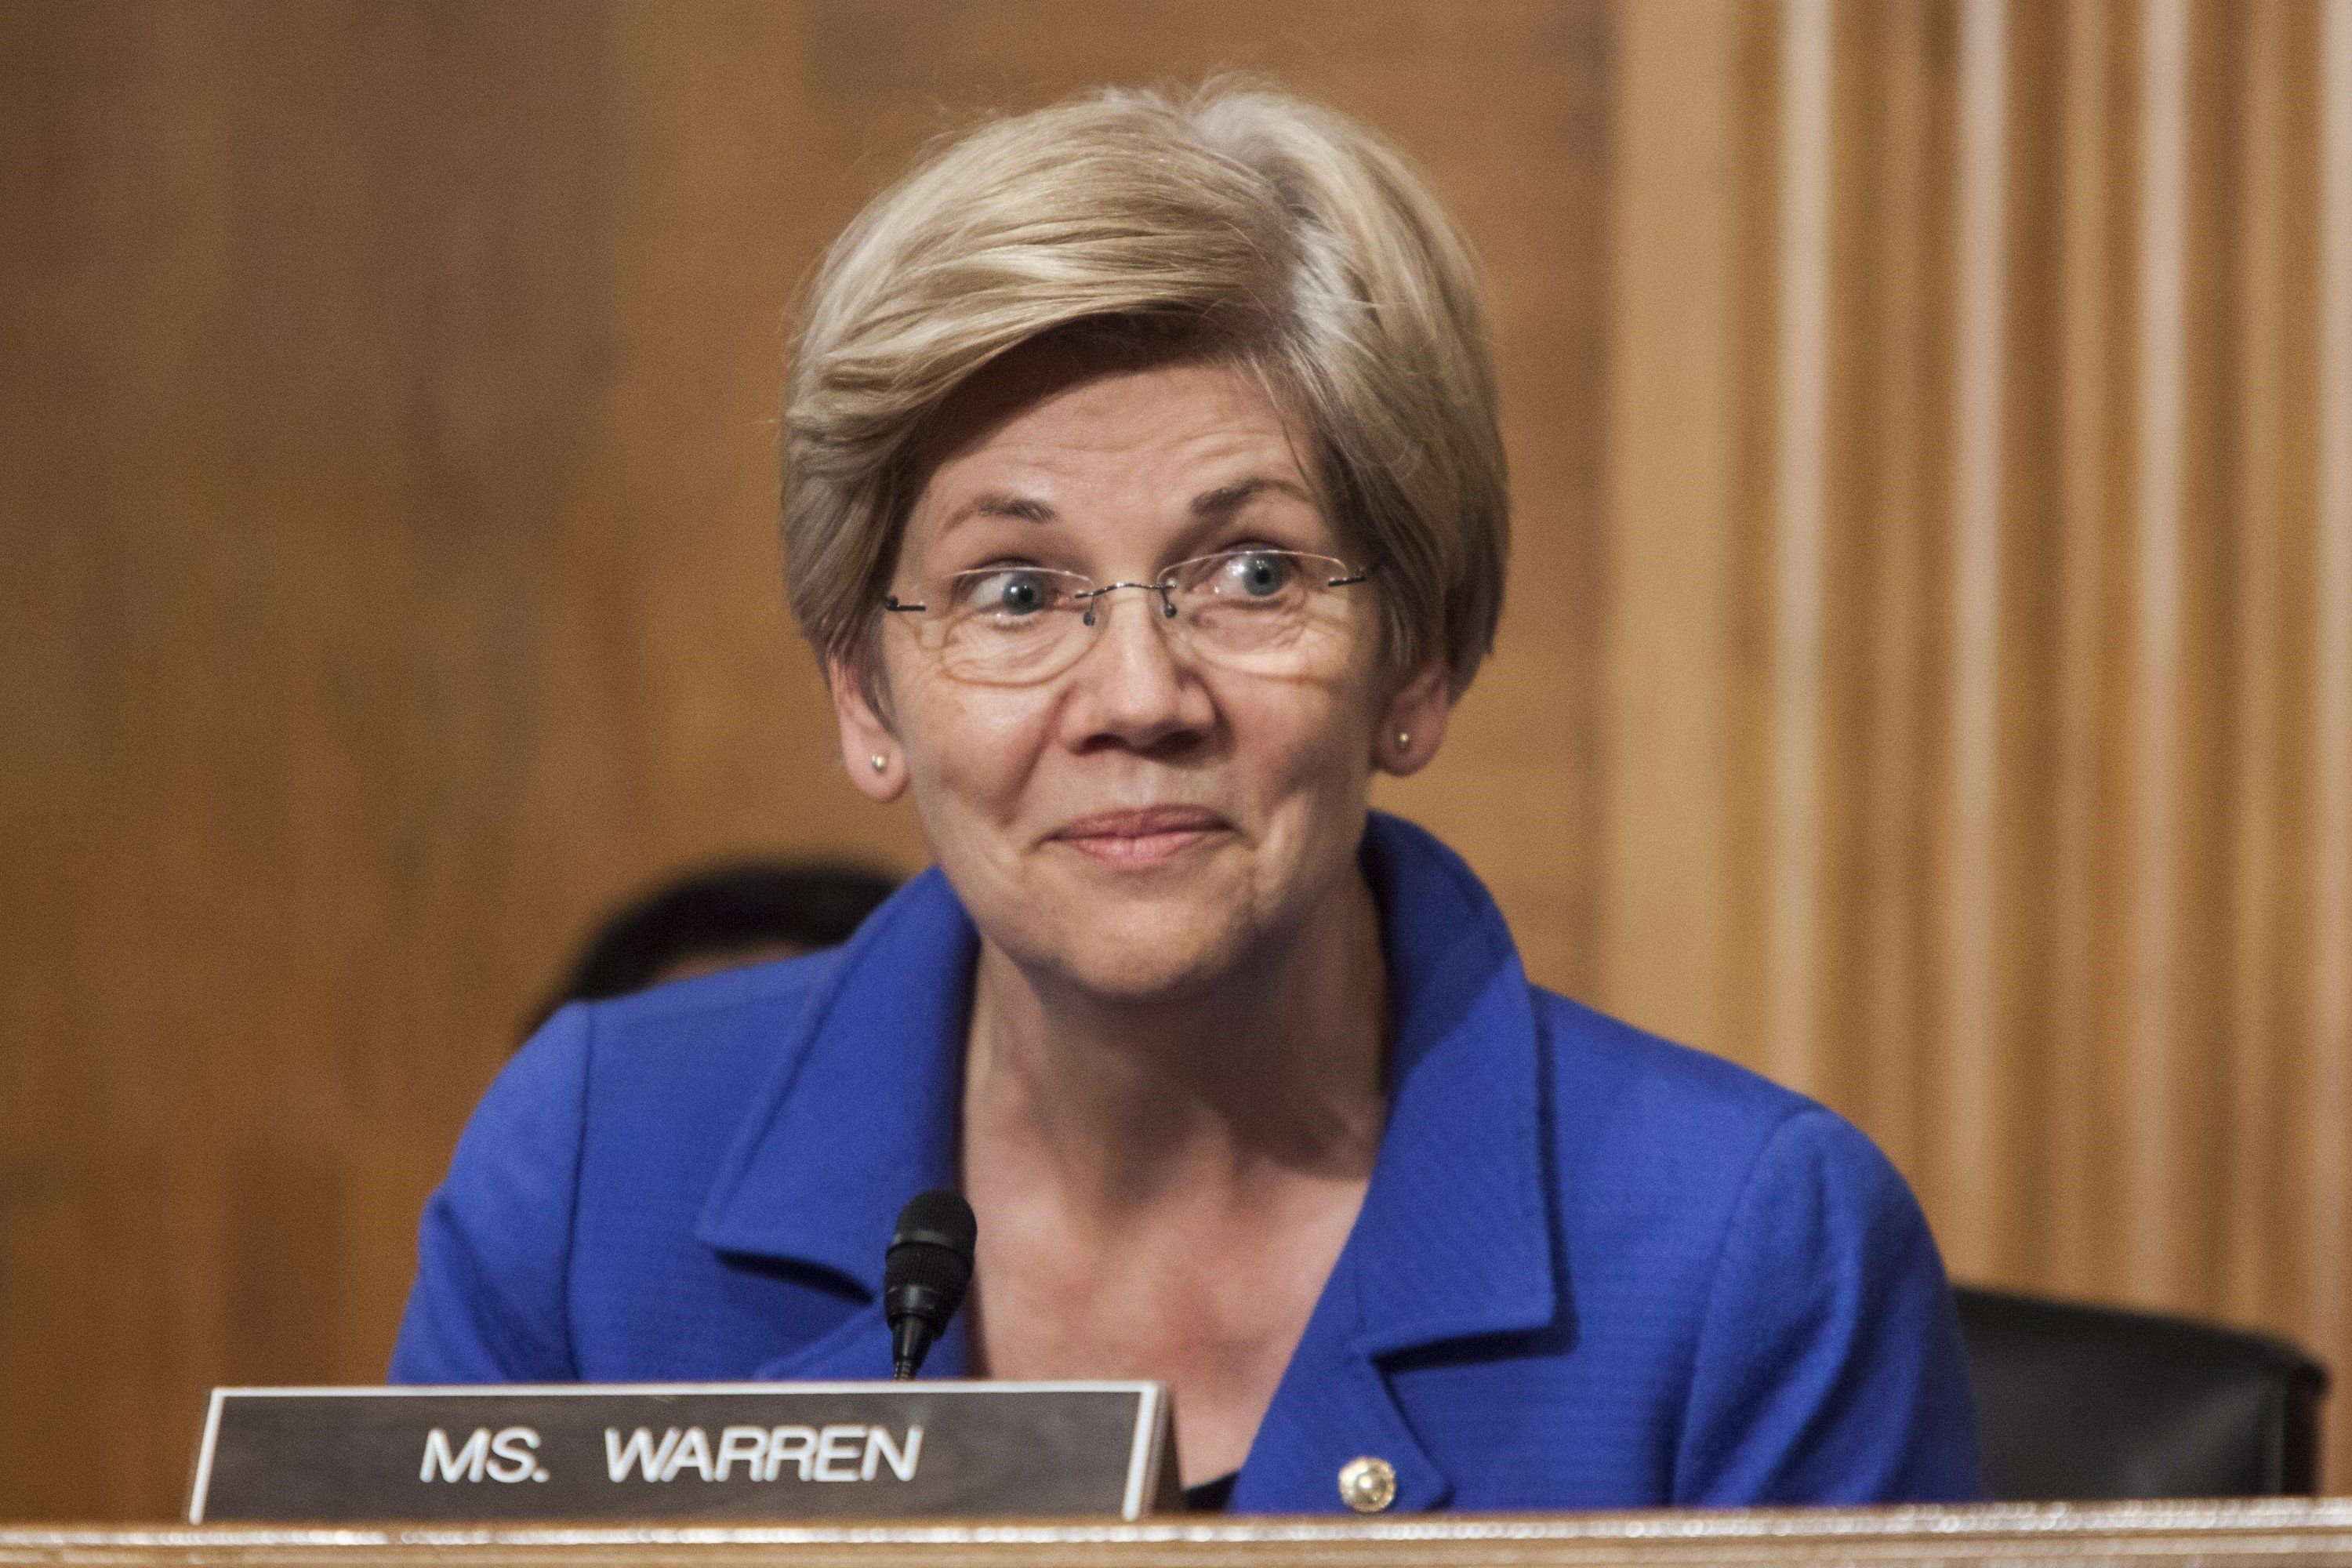 WASHINGTON, USA - JULY 16: Senator Elizabeth Warren asks Janet Yellen questions during a Senate Banking, Housing, and Urban Affairs Committee during a hearing on The Semiannual Monetary Policy Report to the Congress. in Washington, USA on JULY 16, 2015. (Photo by Samuel Corum/Anadolu Agency/Getty Images)